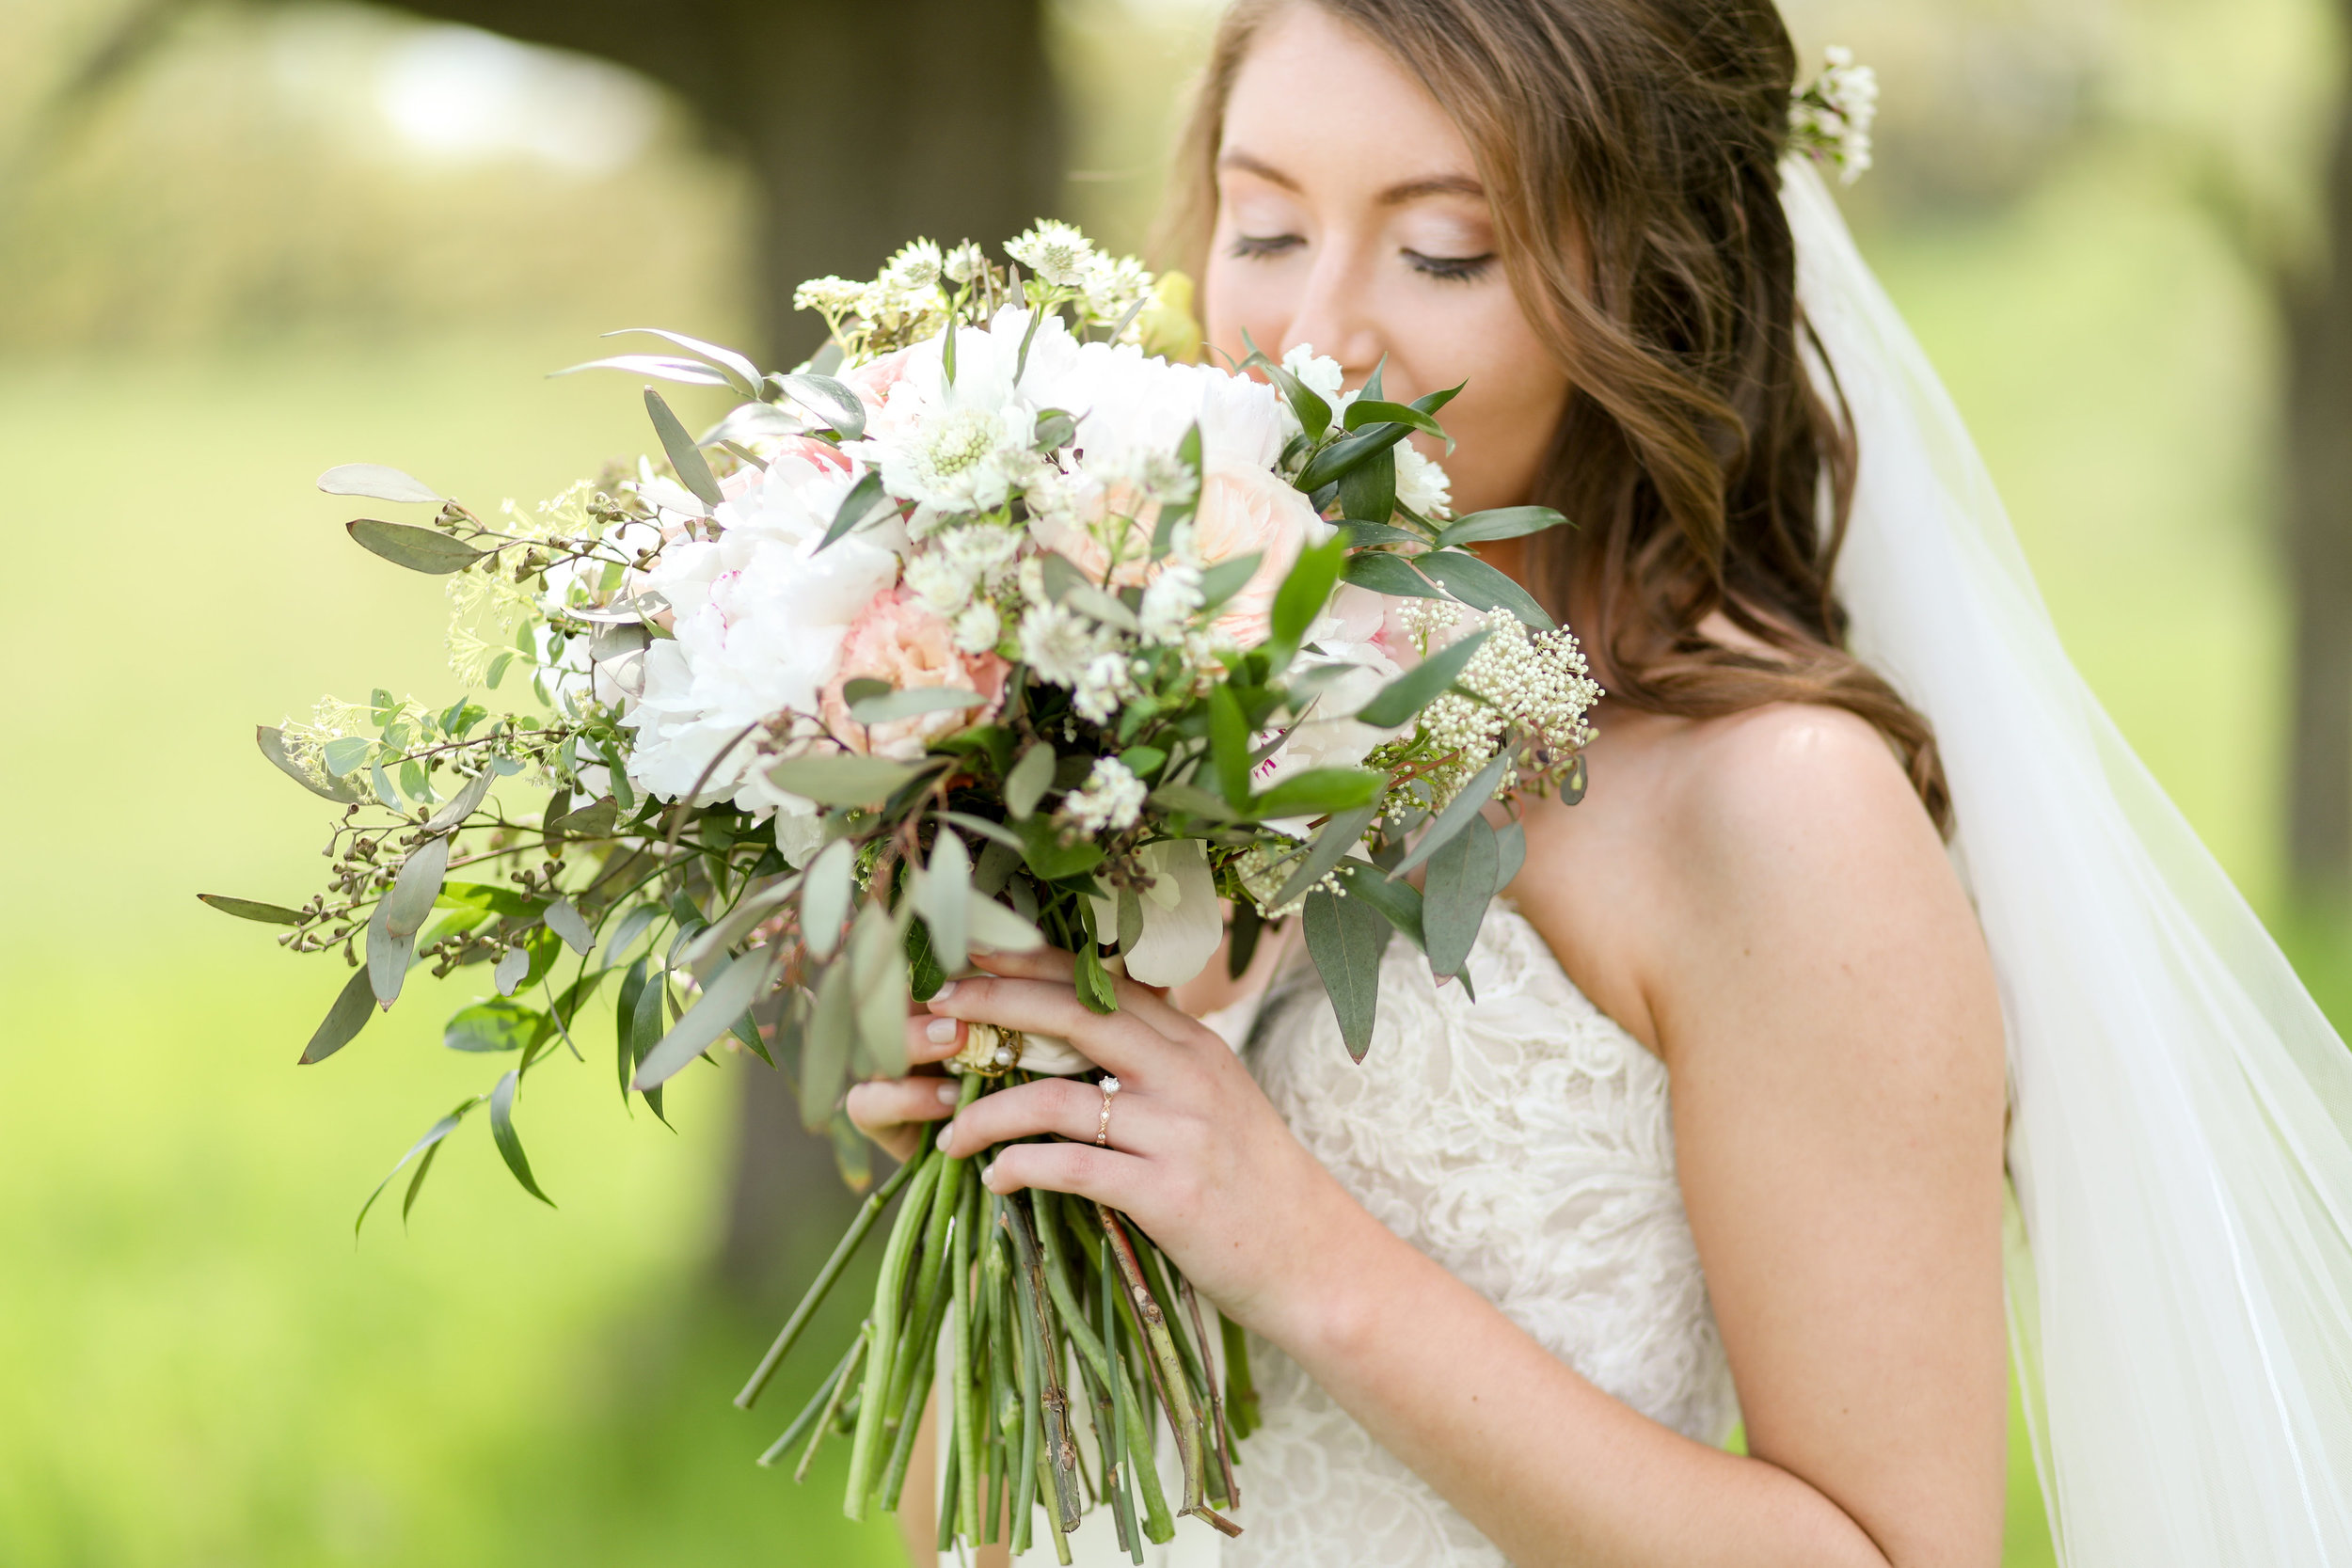 Featured Weddings - this can be your 'Best Day Ever'